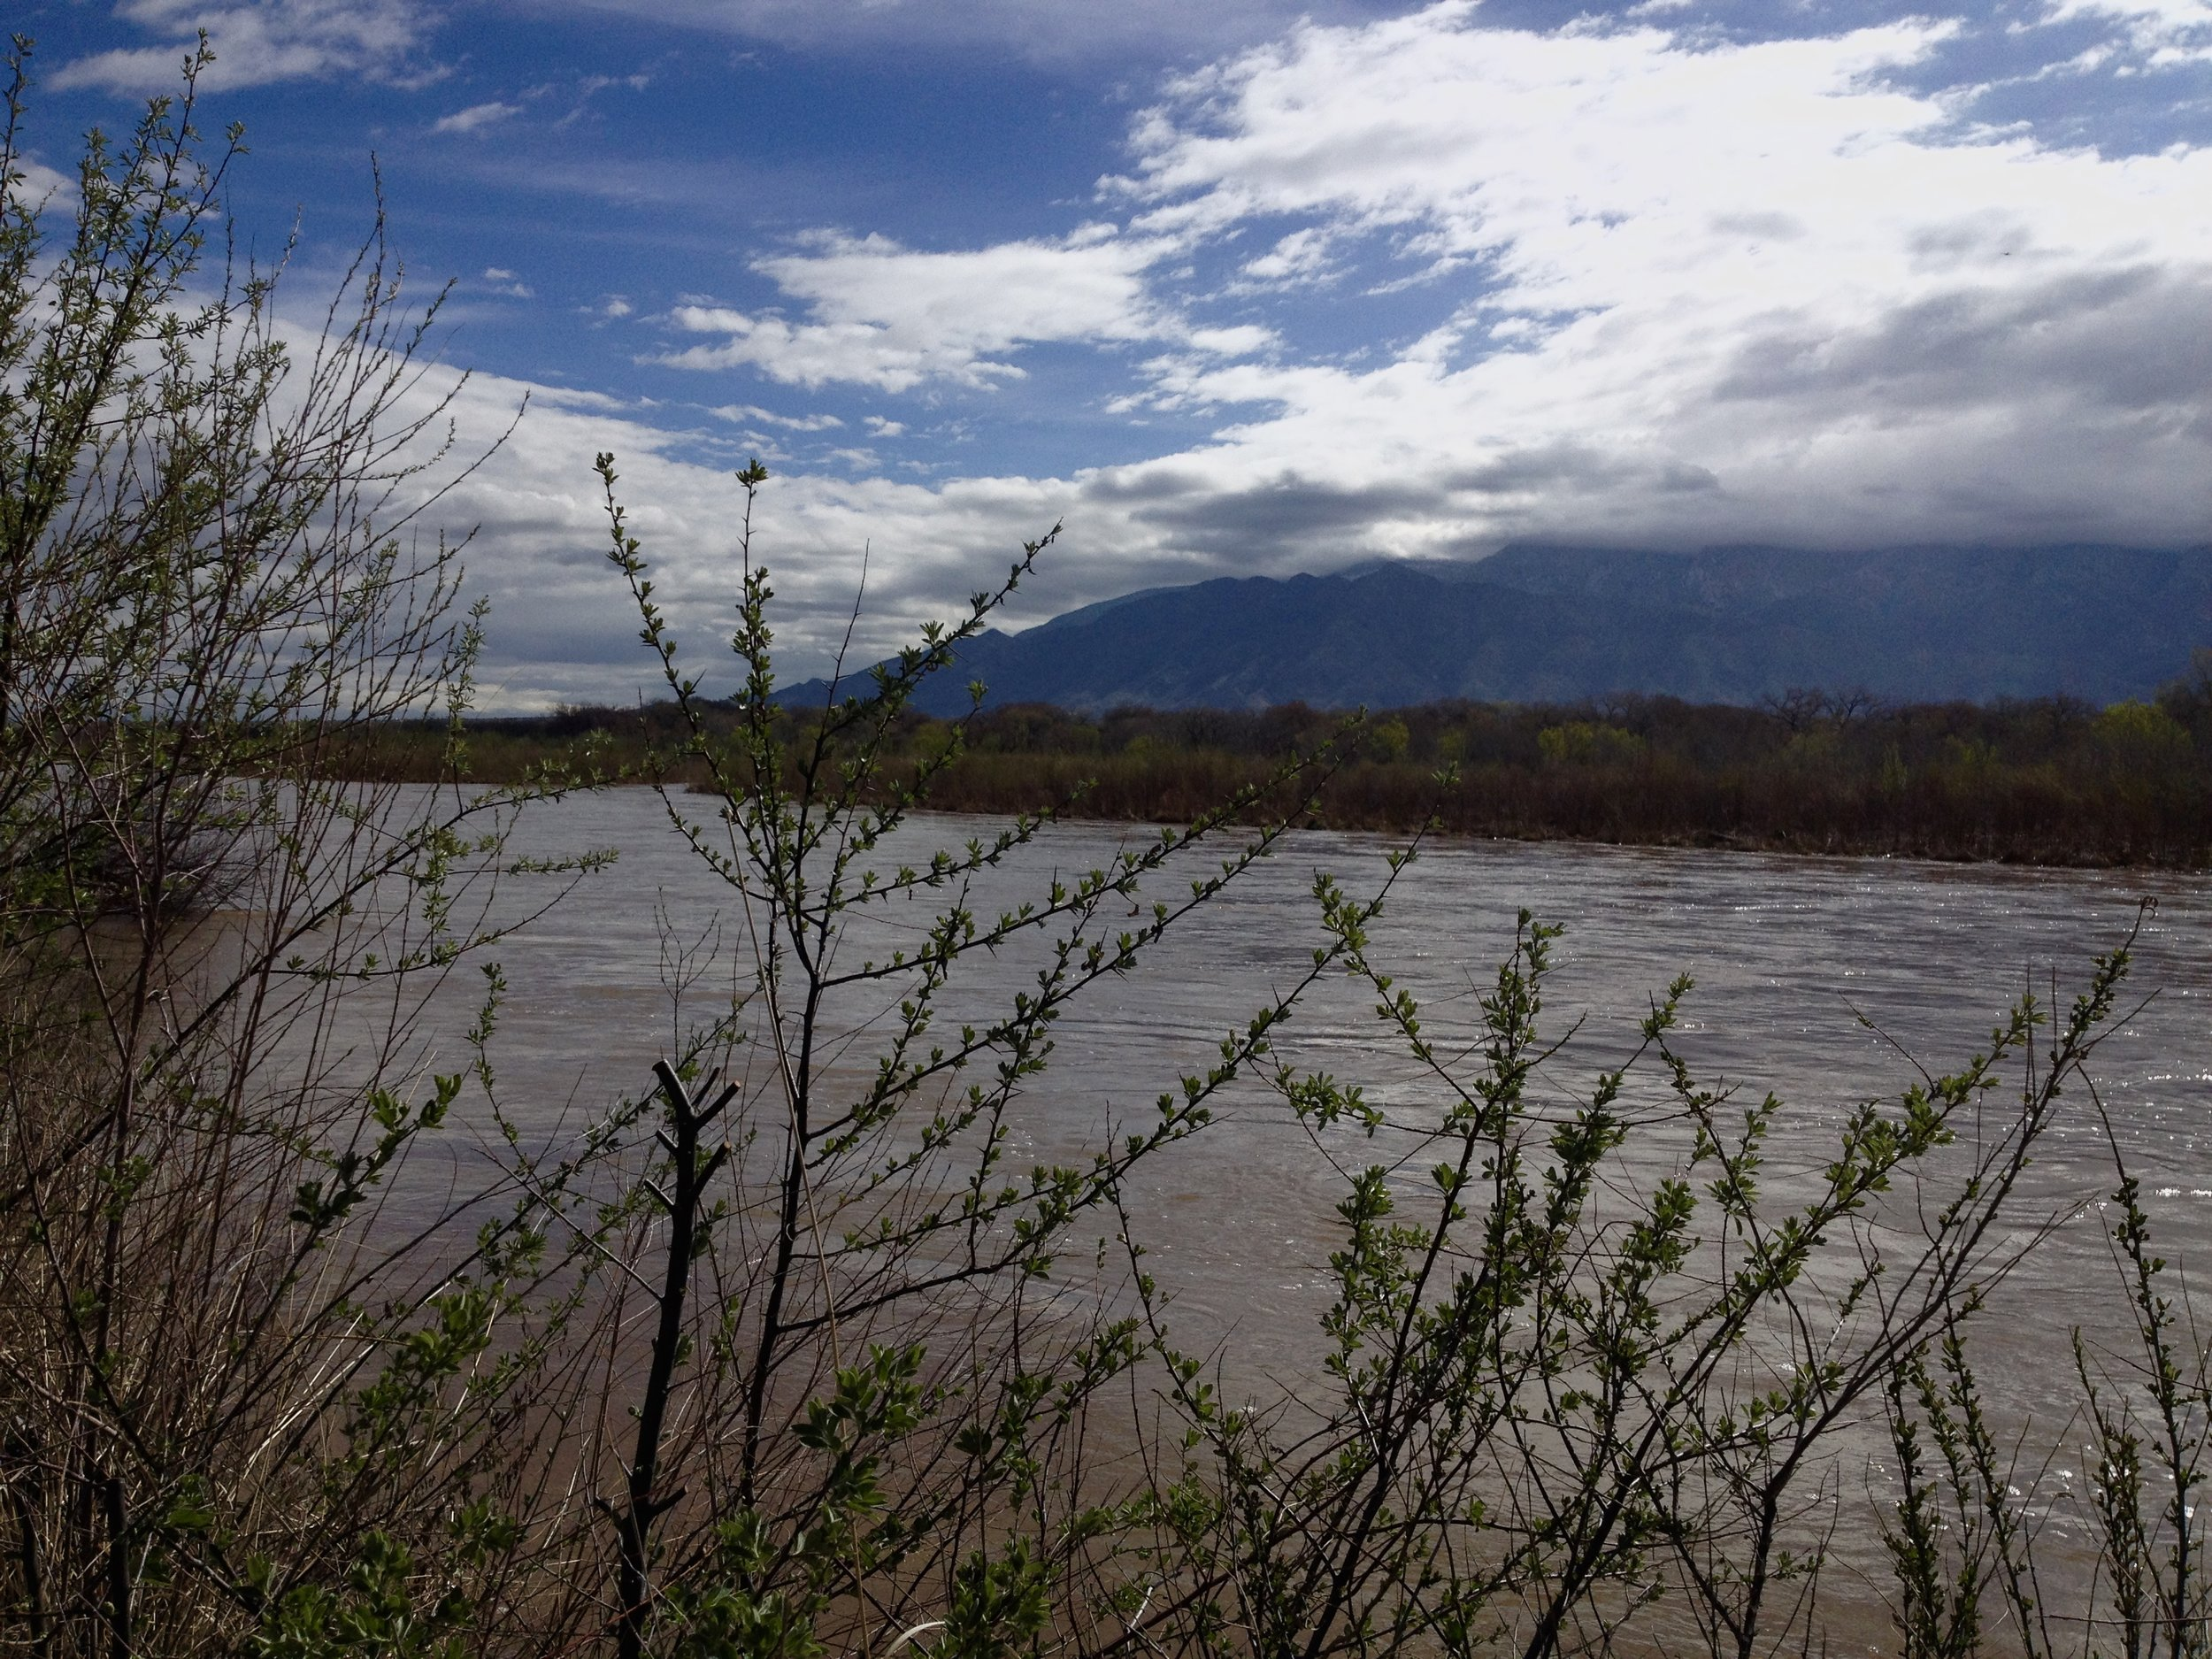 A river surrenders to its flow trusting it will reach the ocean. Rio Grande River, New Mexico, 2017